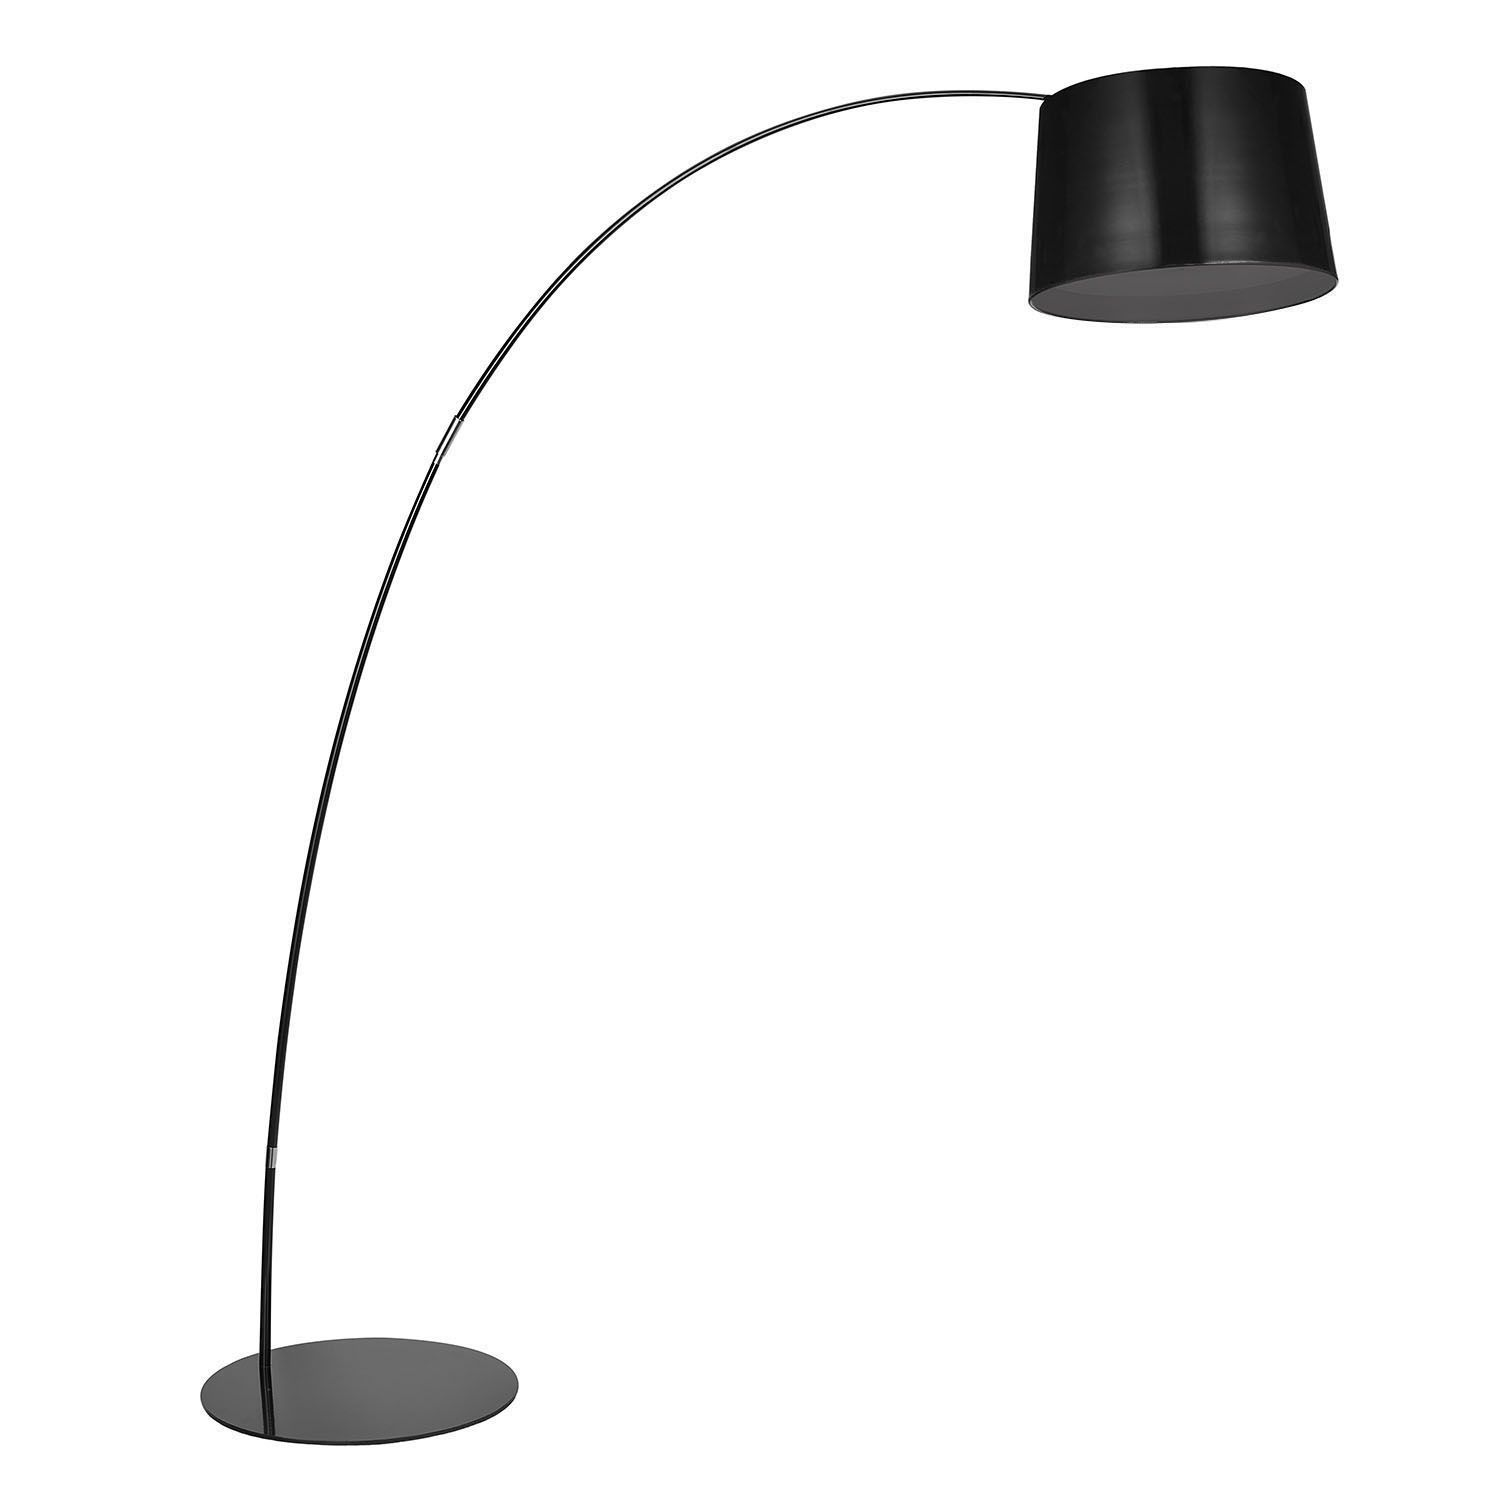 Revolutionary lamp, you´re surprised, this is definitely